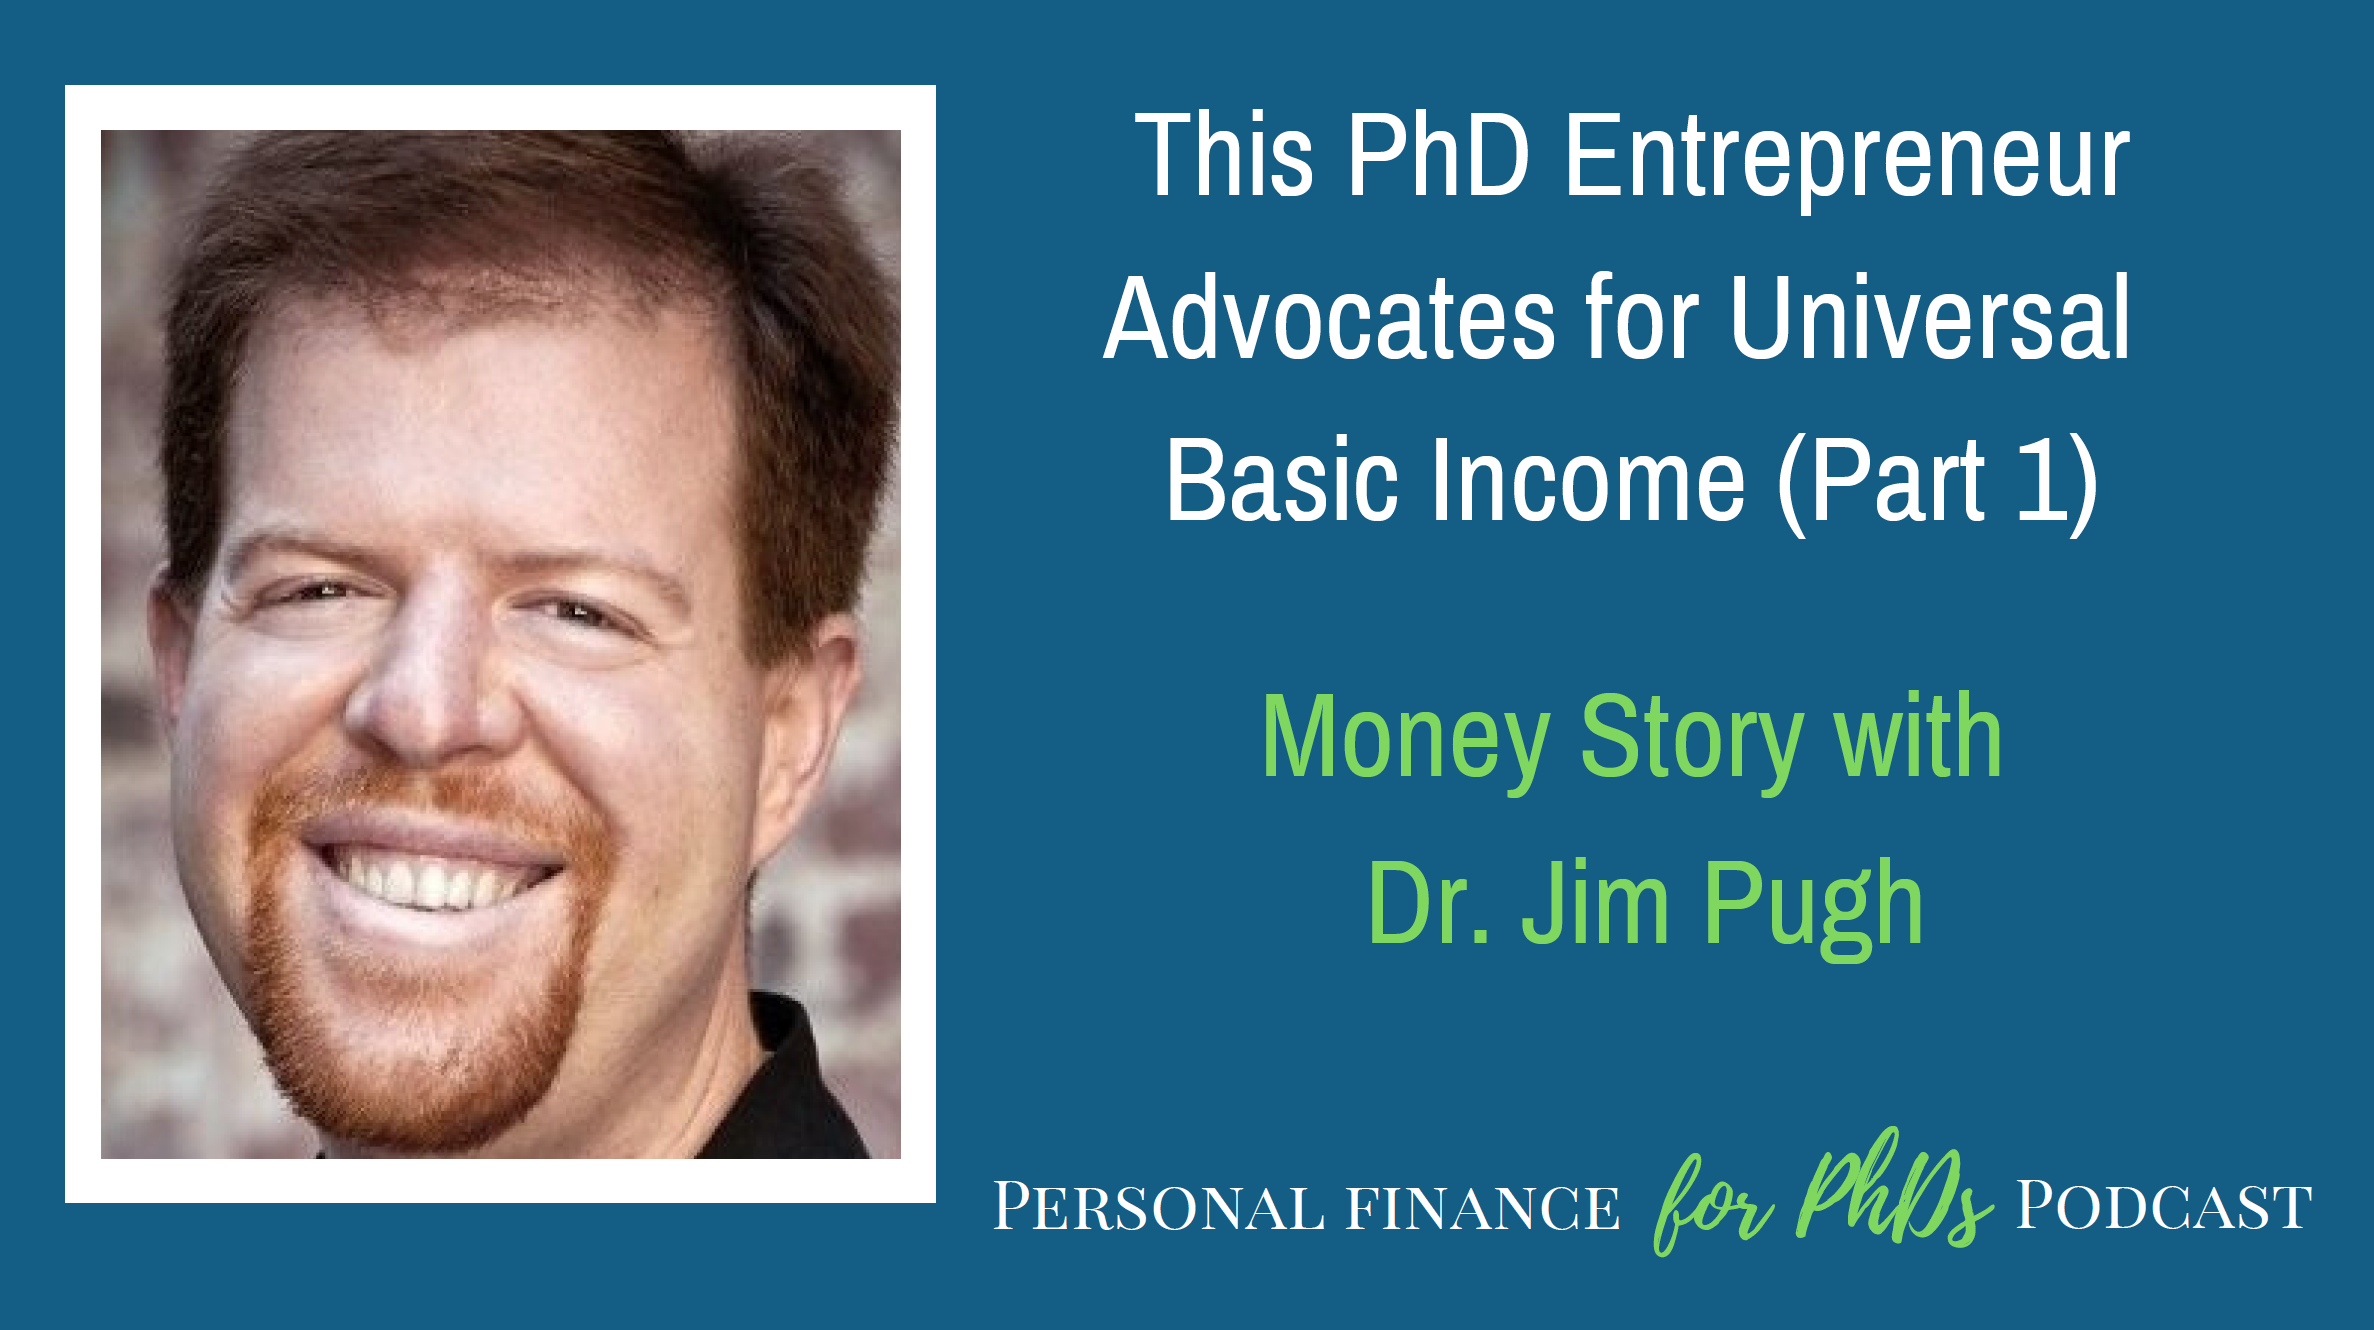 PhD entrepreneur basic income